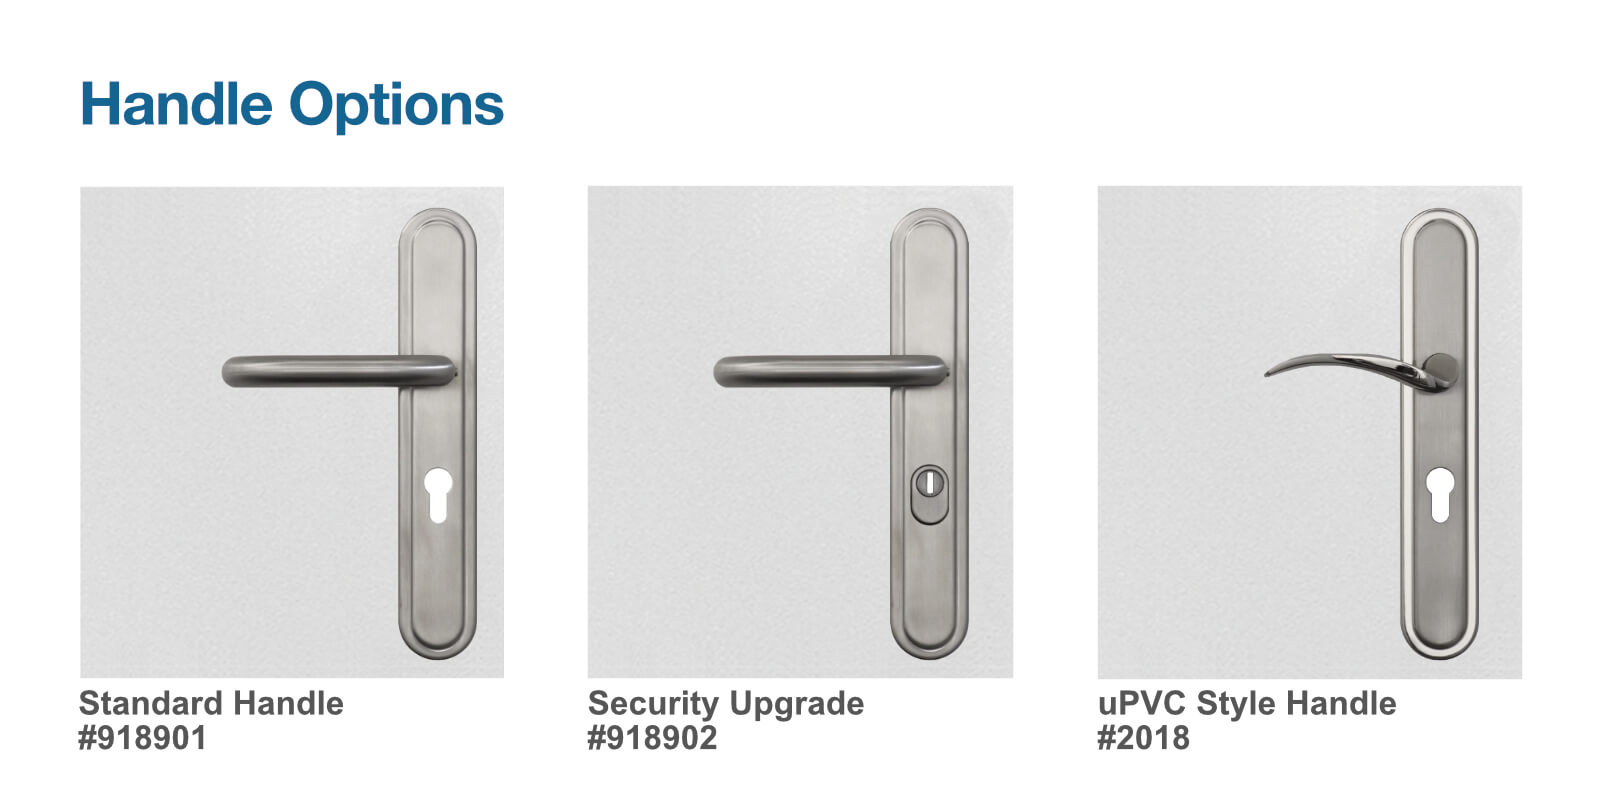 Handle options for container doors